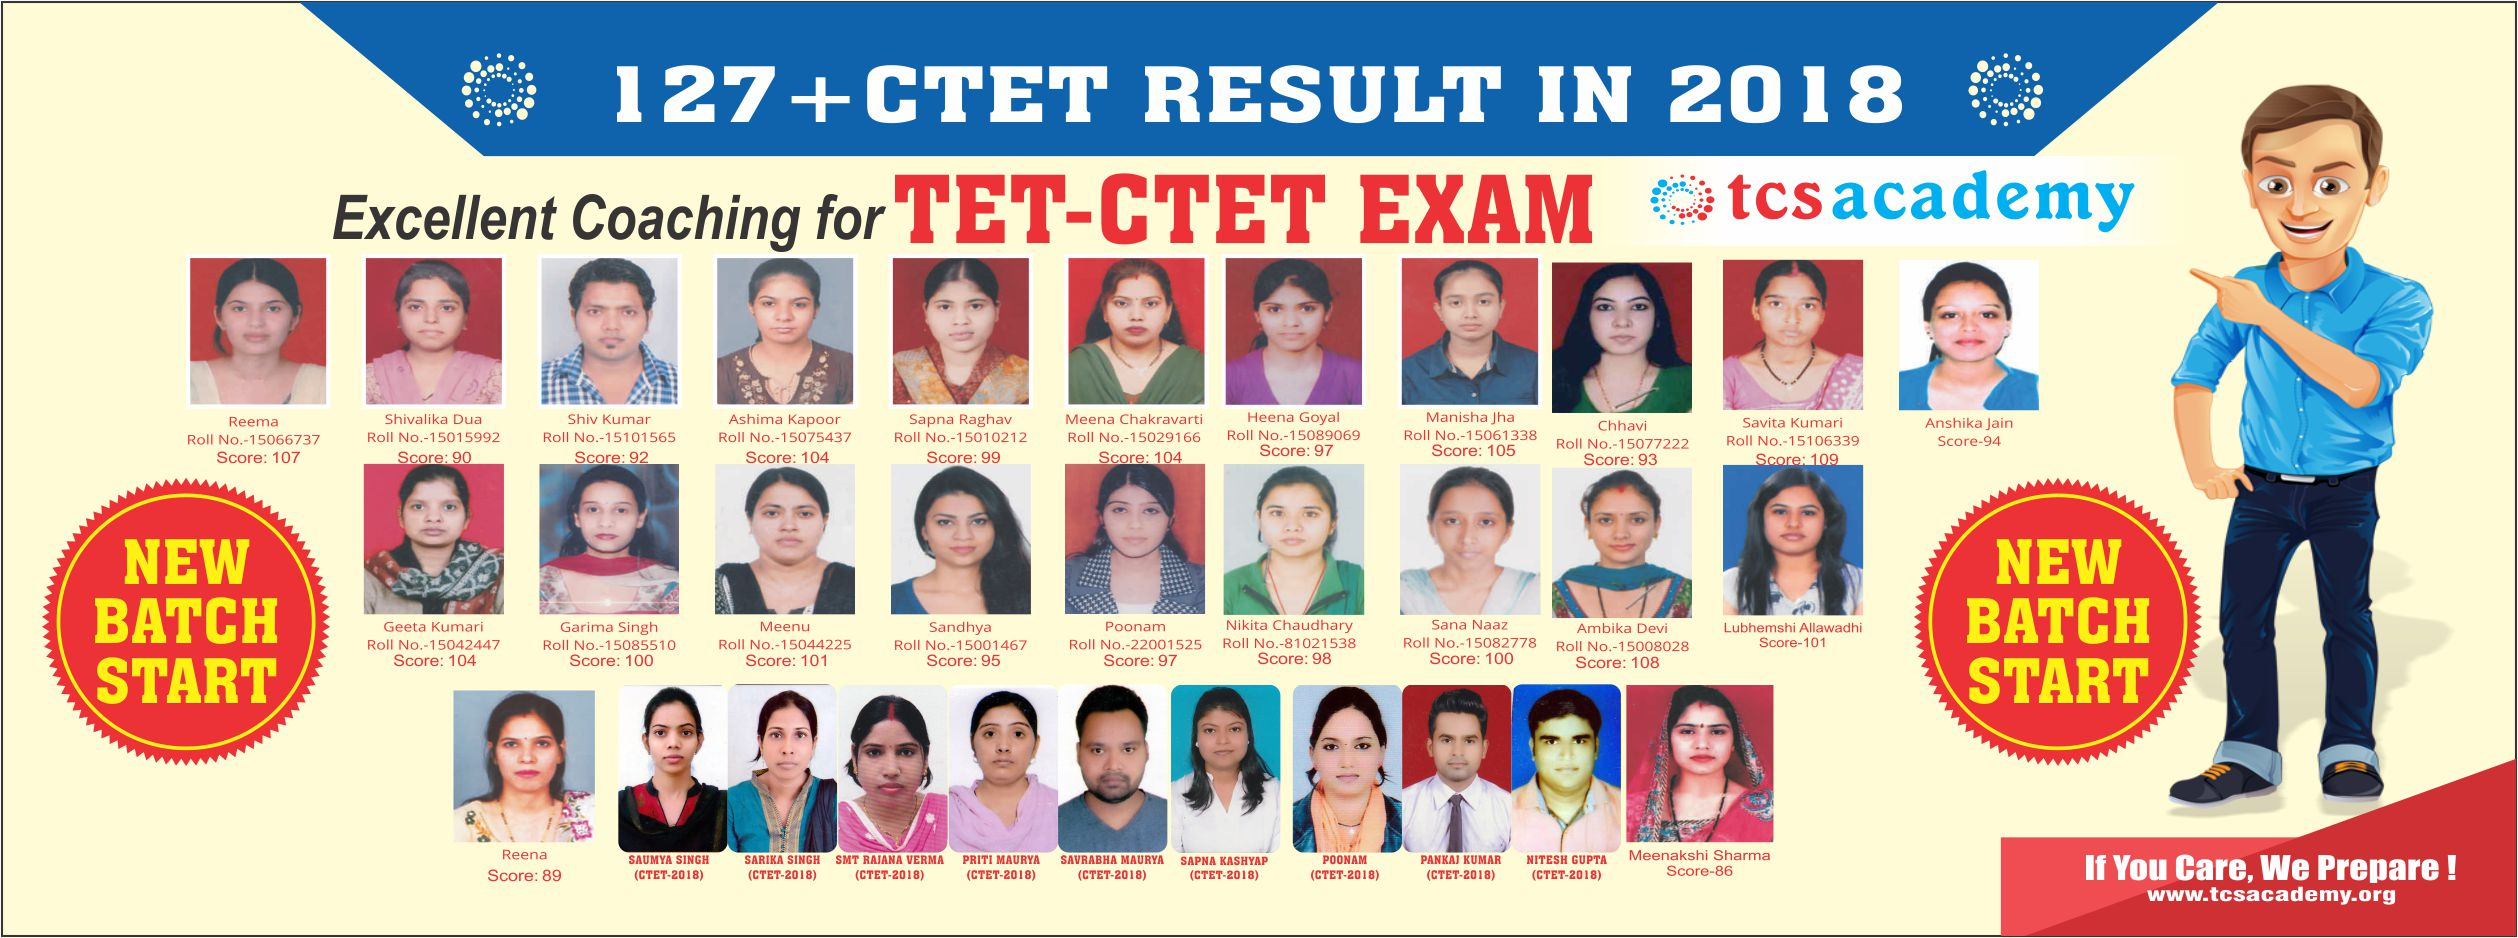 CTET RESULT 2018 - TCS ACADEMY - CTET COACHINGIN LUCKNOW